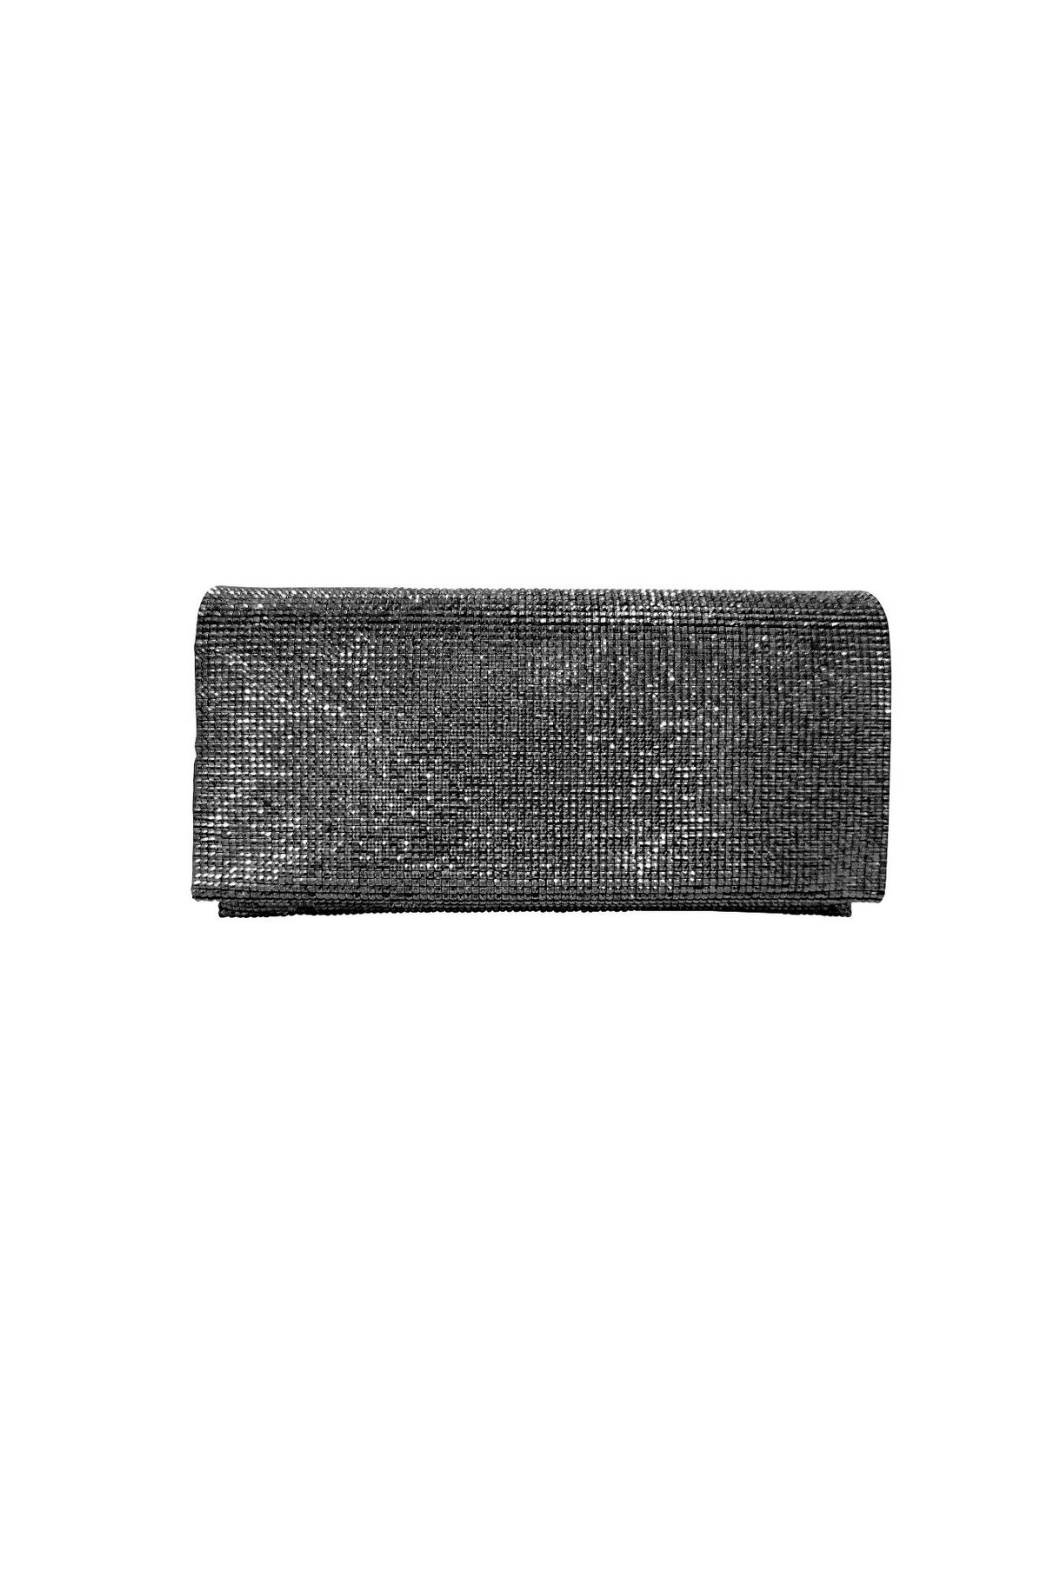 Sondra Roberts Textured Metallic Evening Clutch - Main Image